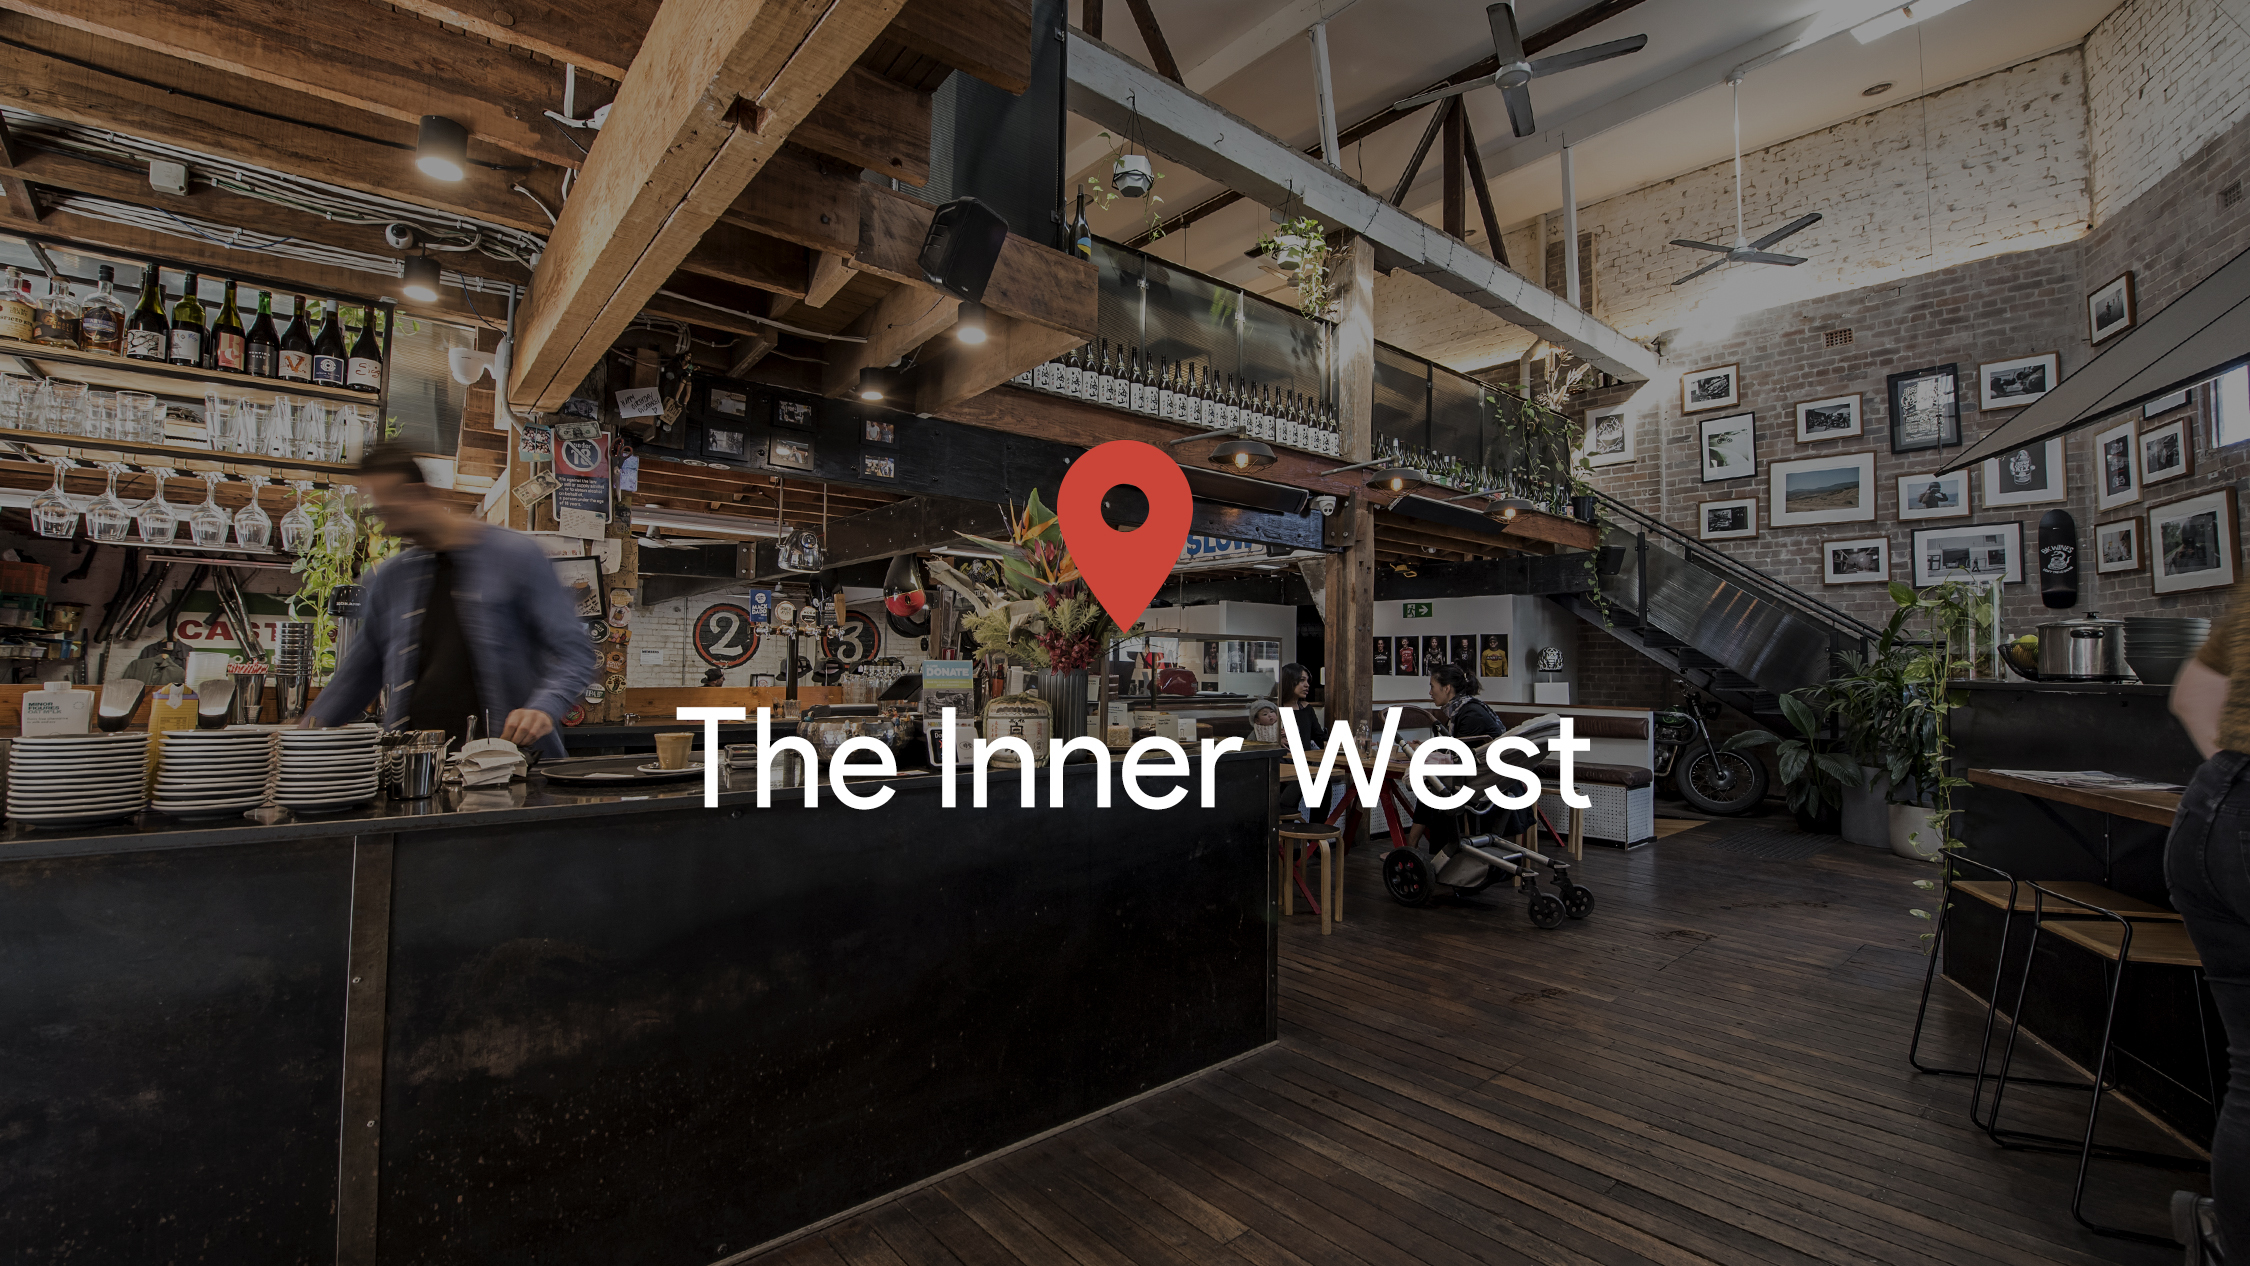 Drop a pin in: The Inner West